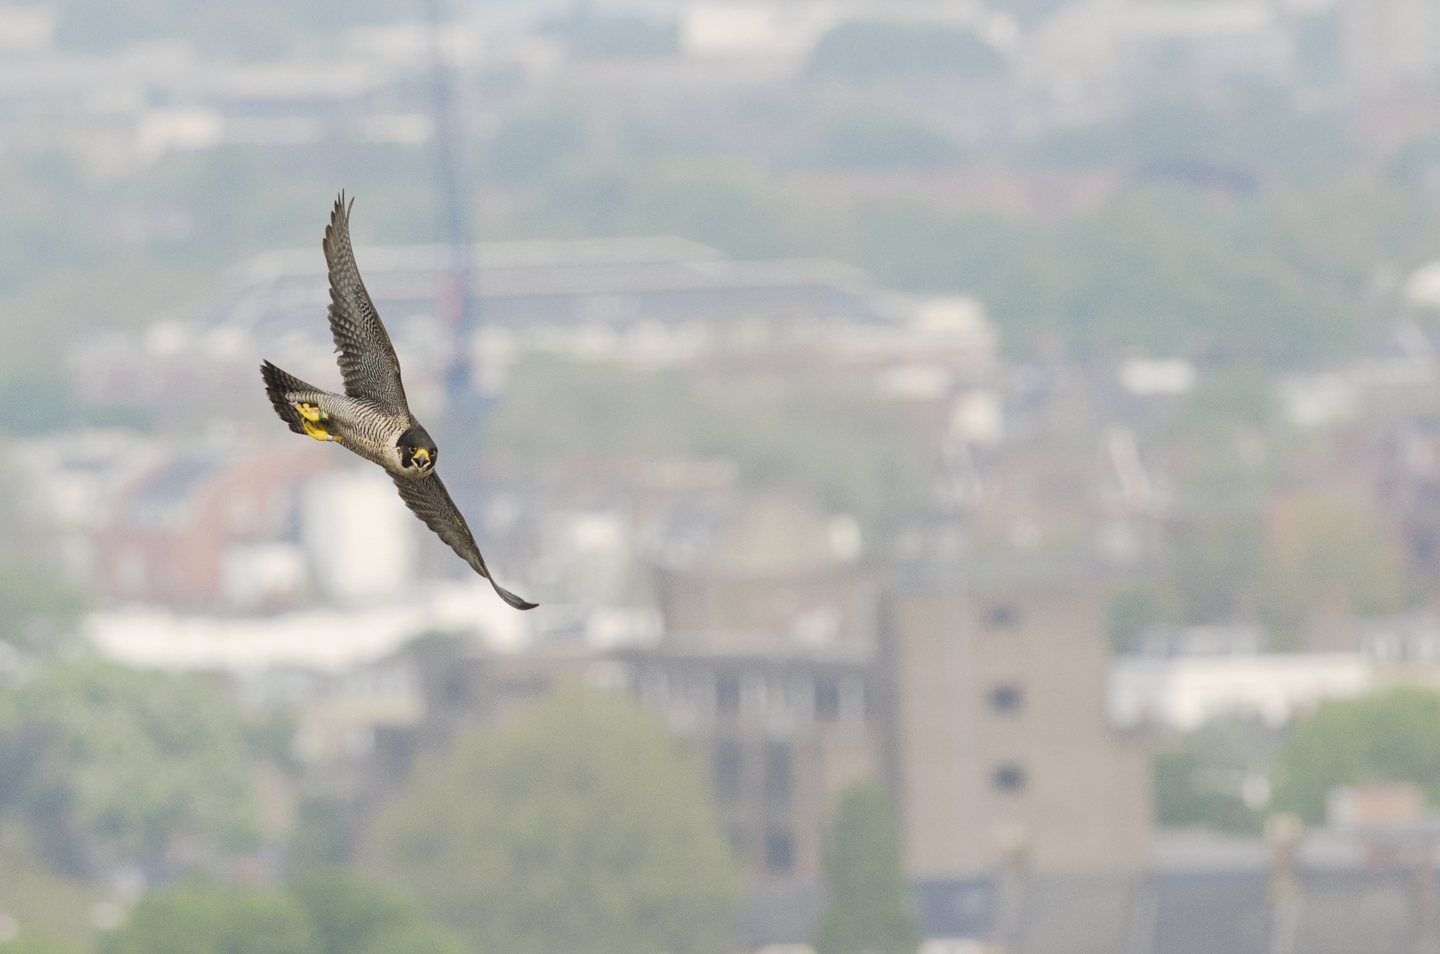 In recent years, these powerful falcons have become one of the UK's greatest urban wildlife success stories